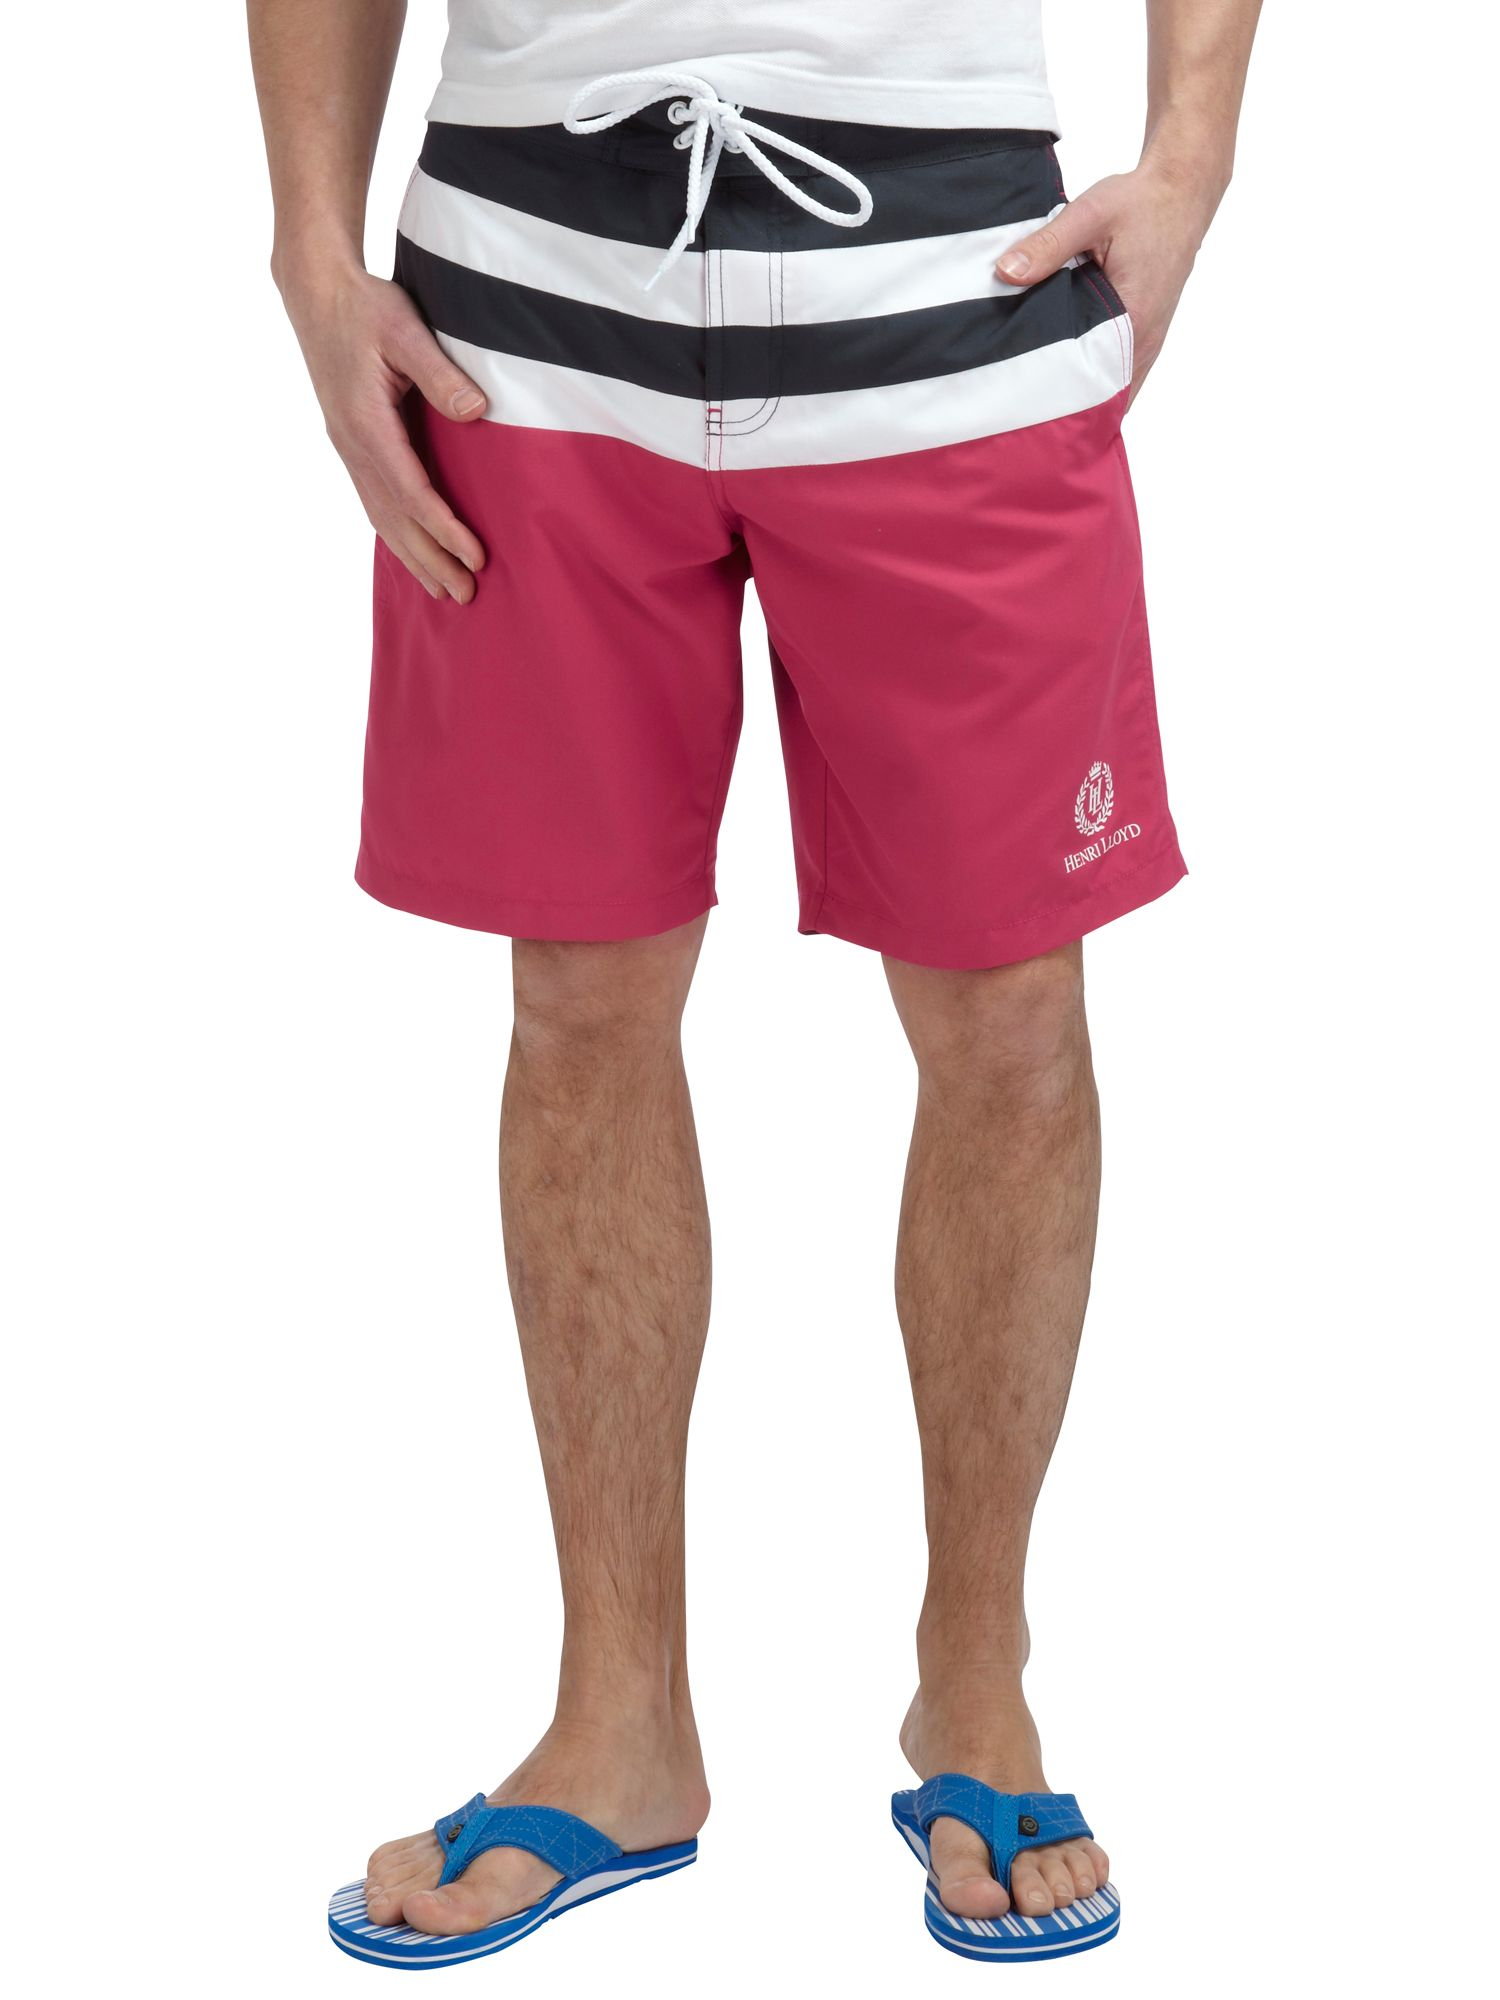 Ives swim short